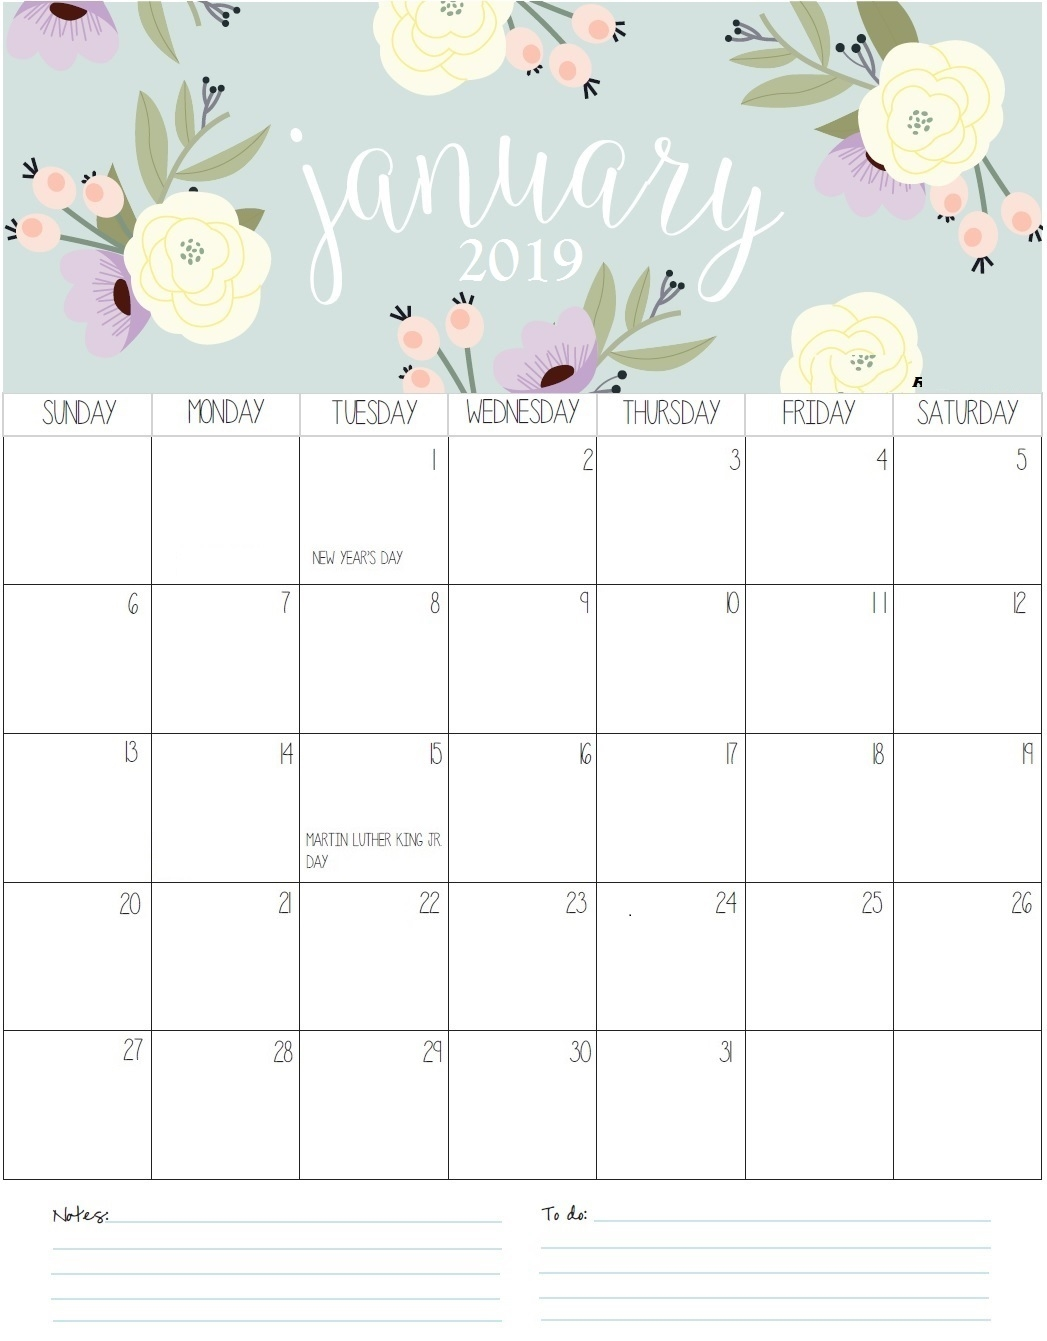 january 2019 calendar ::January 2019 iPhone Calendar